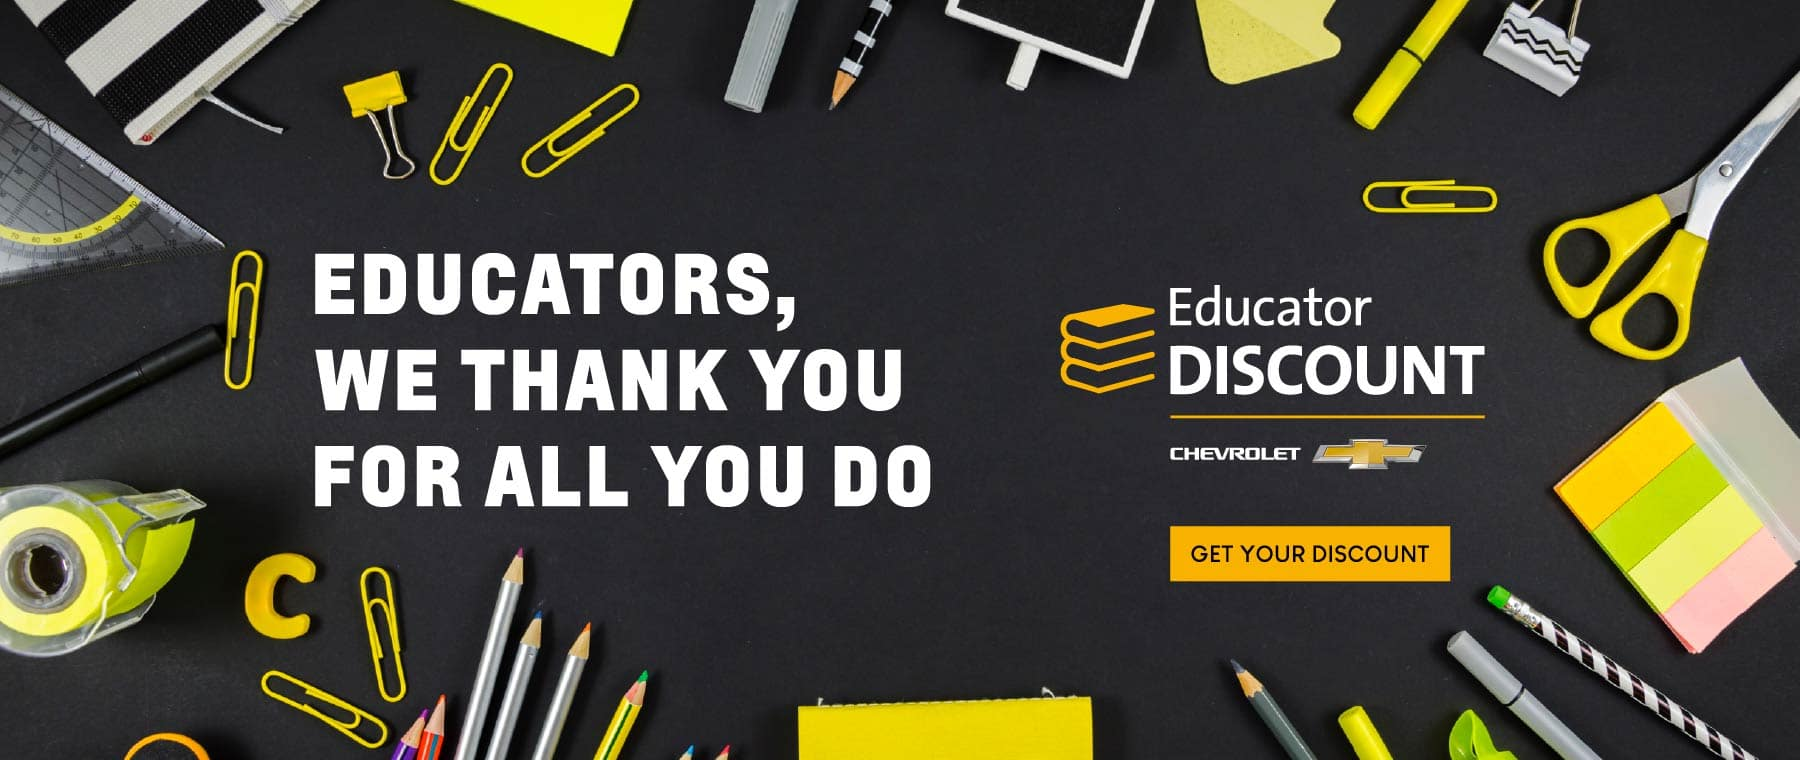 Educators, we thank you for all you do. Educator discount.